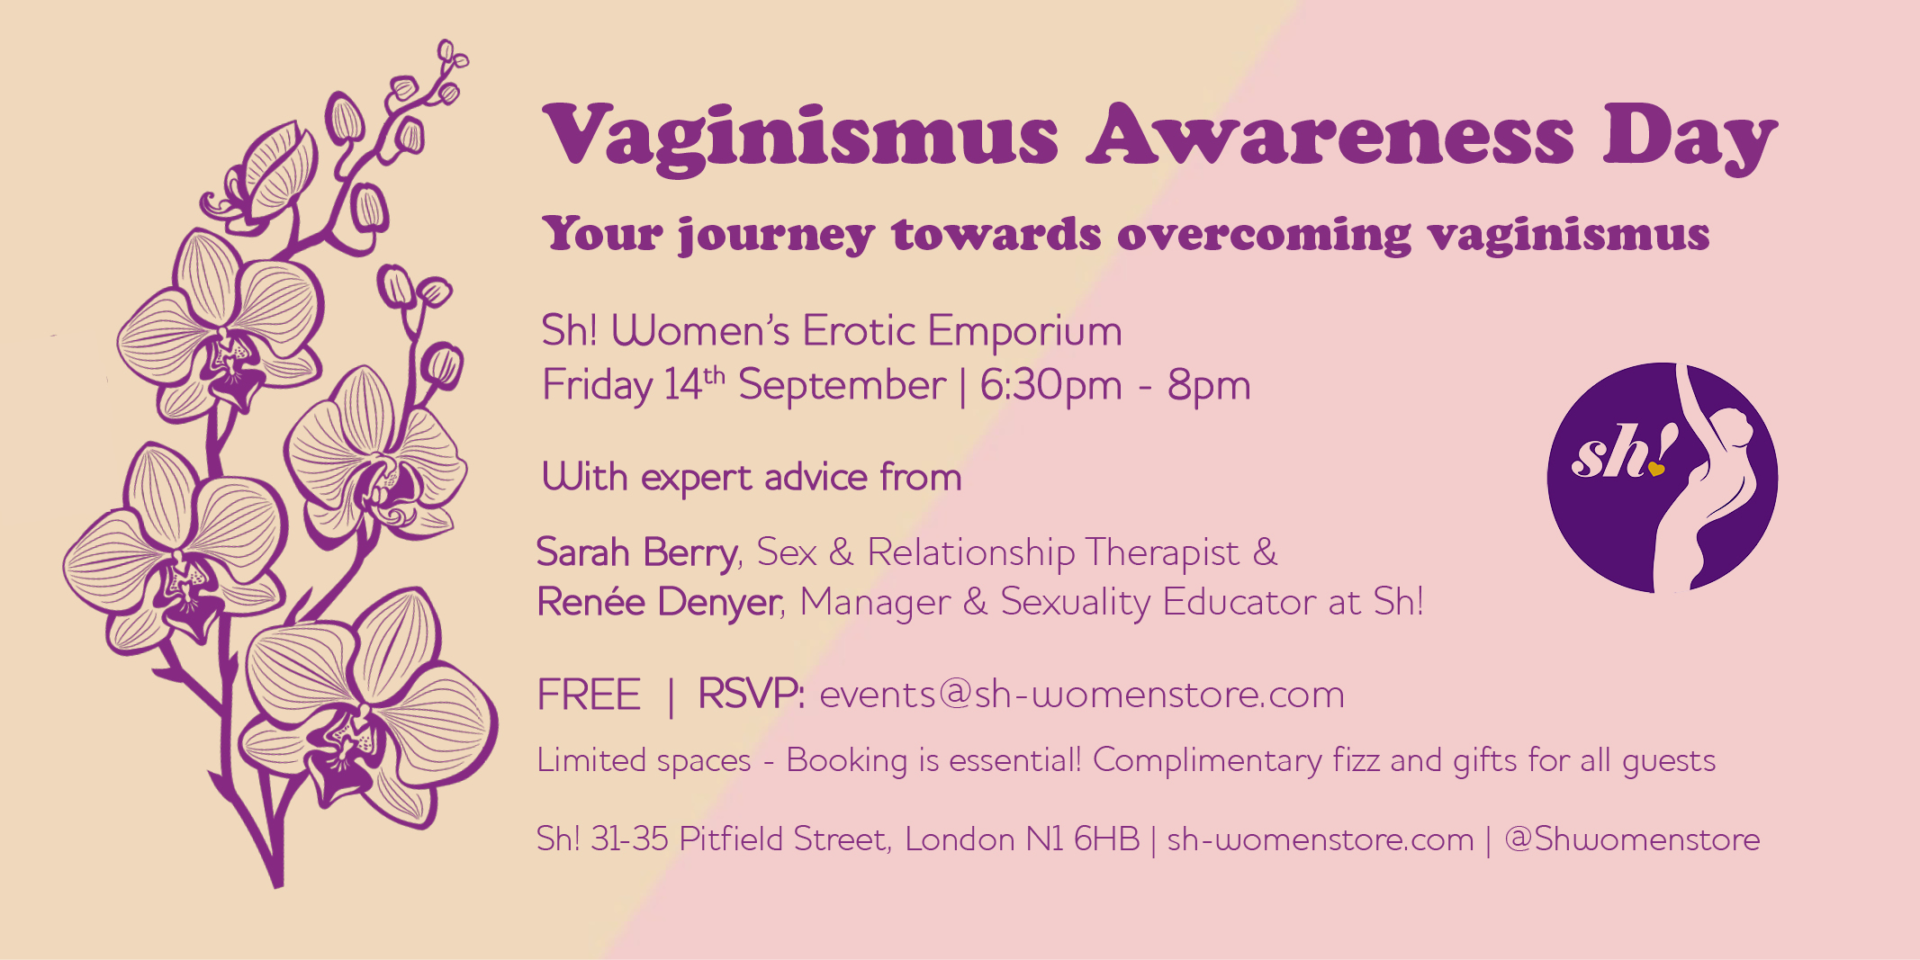 vaginismus awareness day 2018